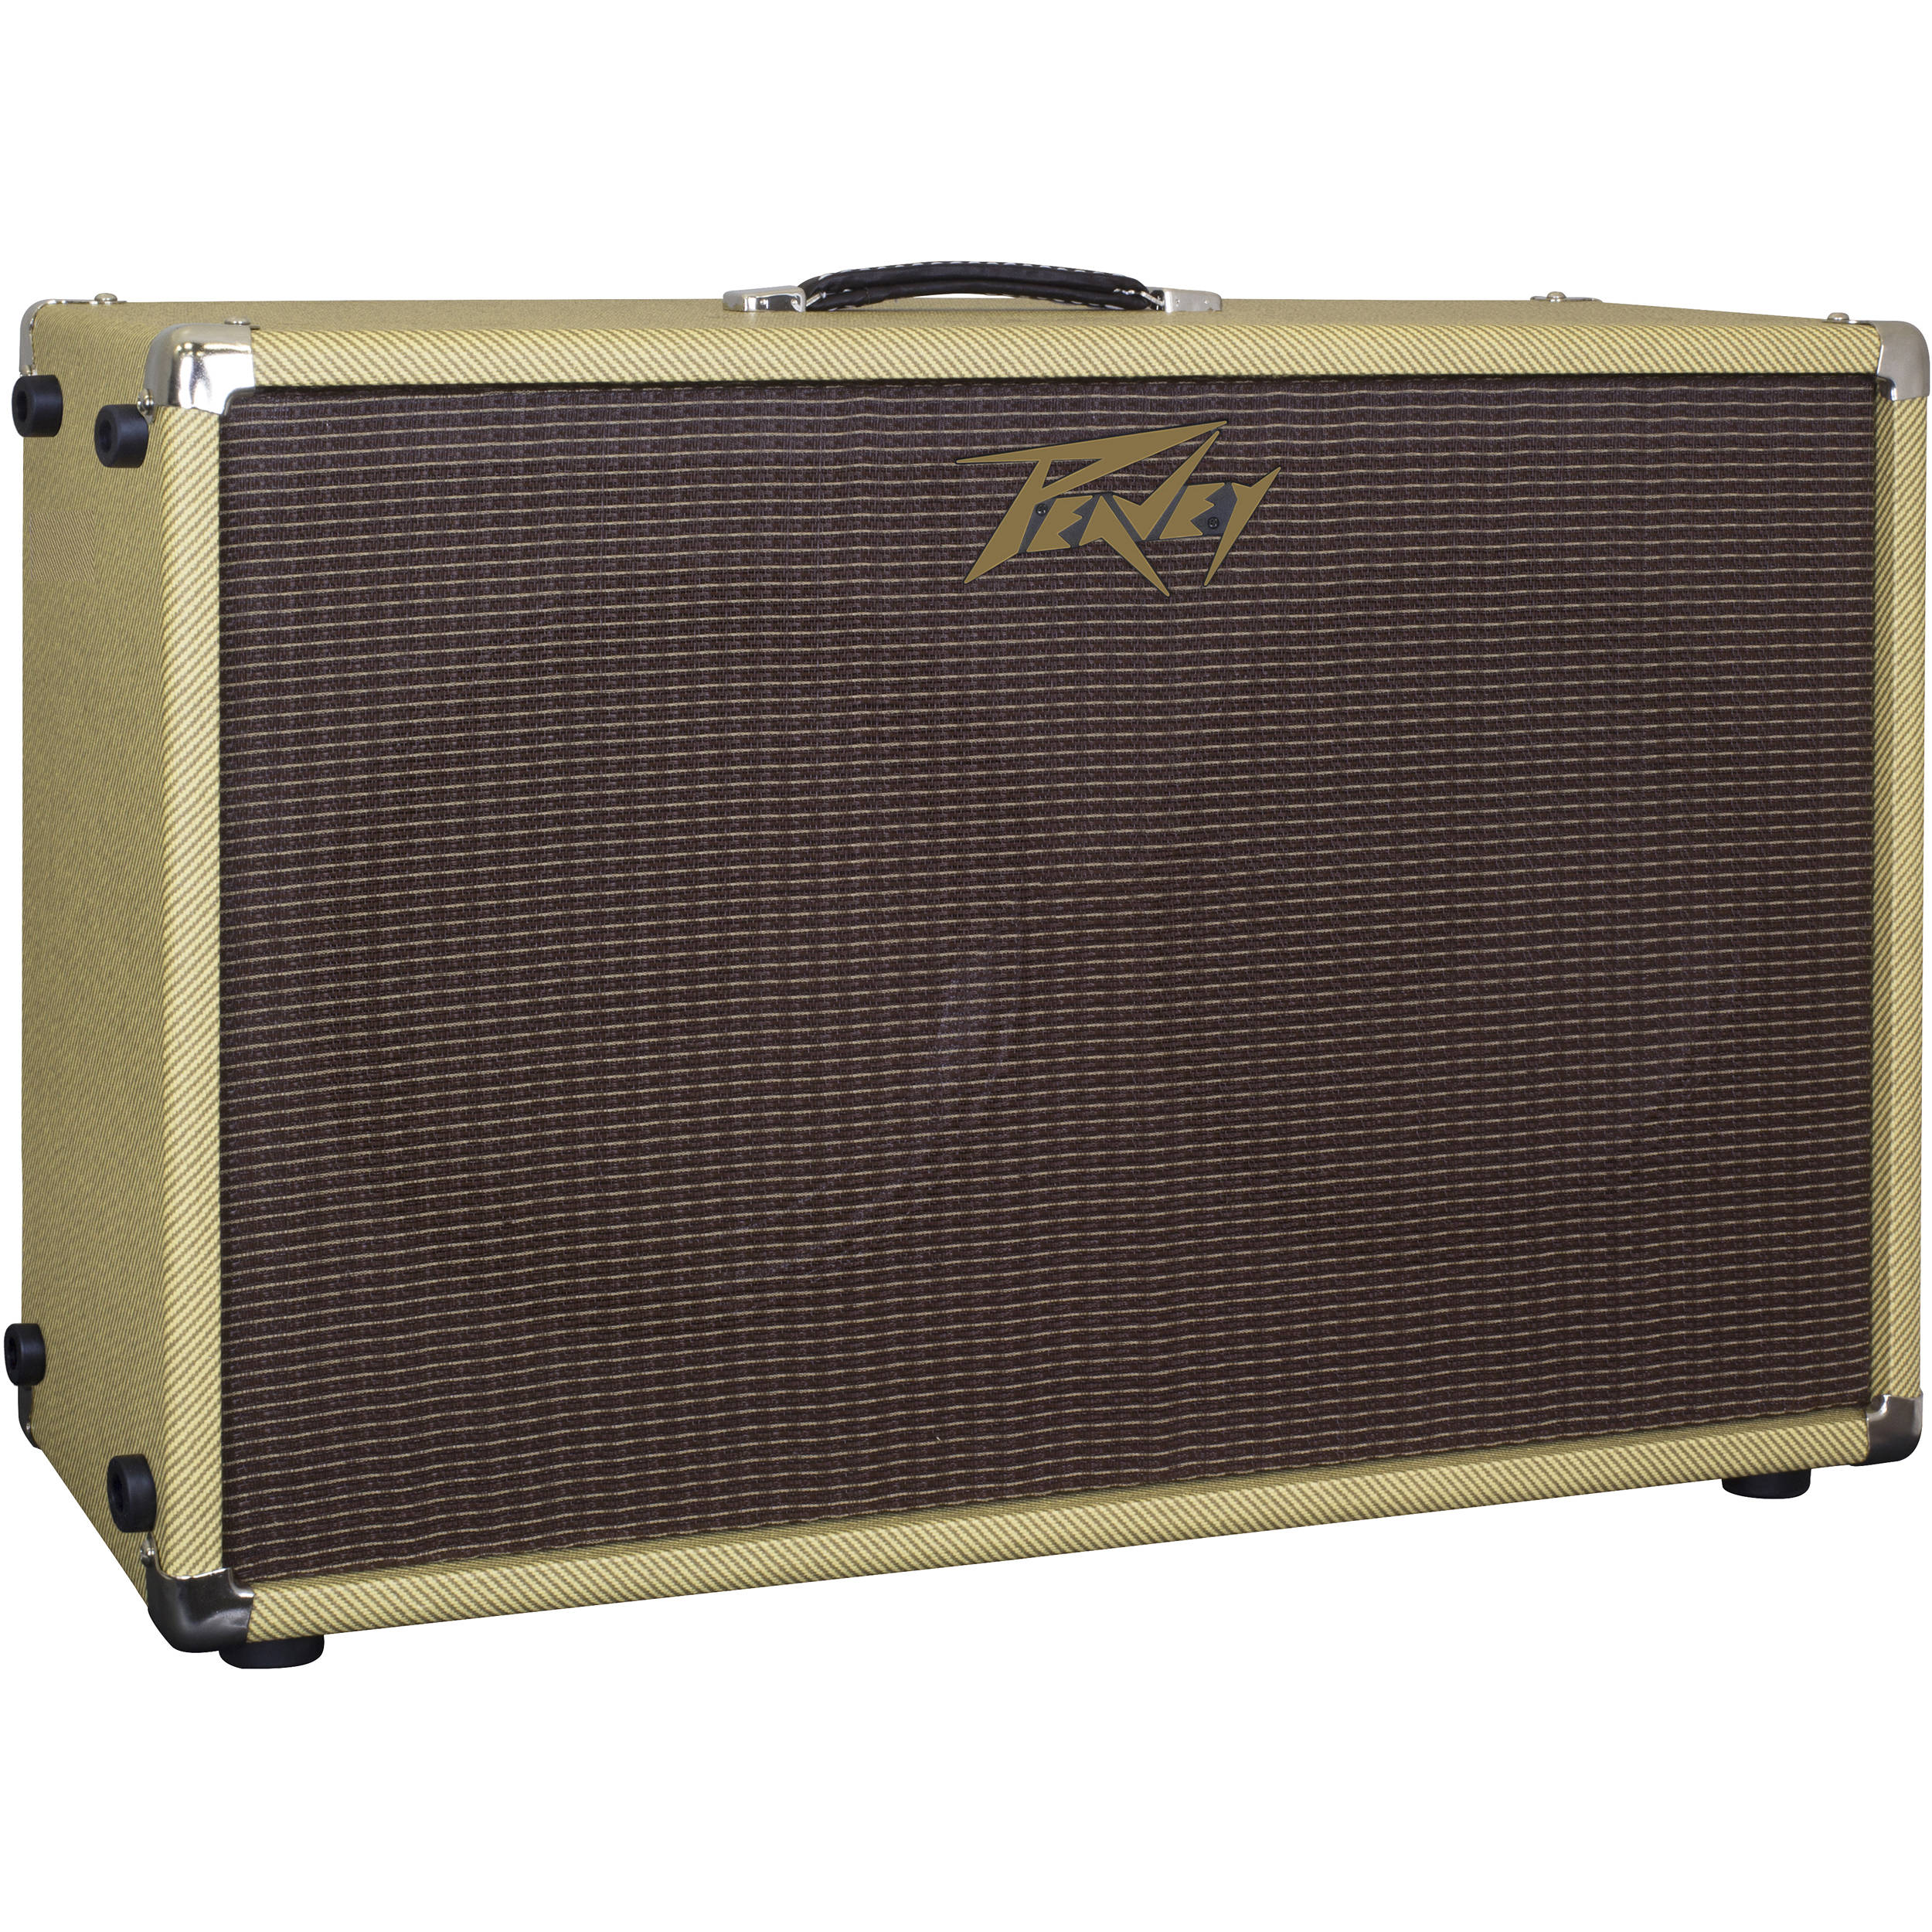 peavey 212 c electric guitar celestion 12 speakers cab cabinet enclosure pev15 3615000 rs. Black Bedroom Furniture Sets. Home Design Ideas